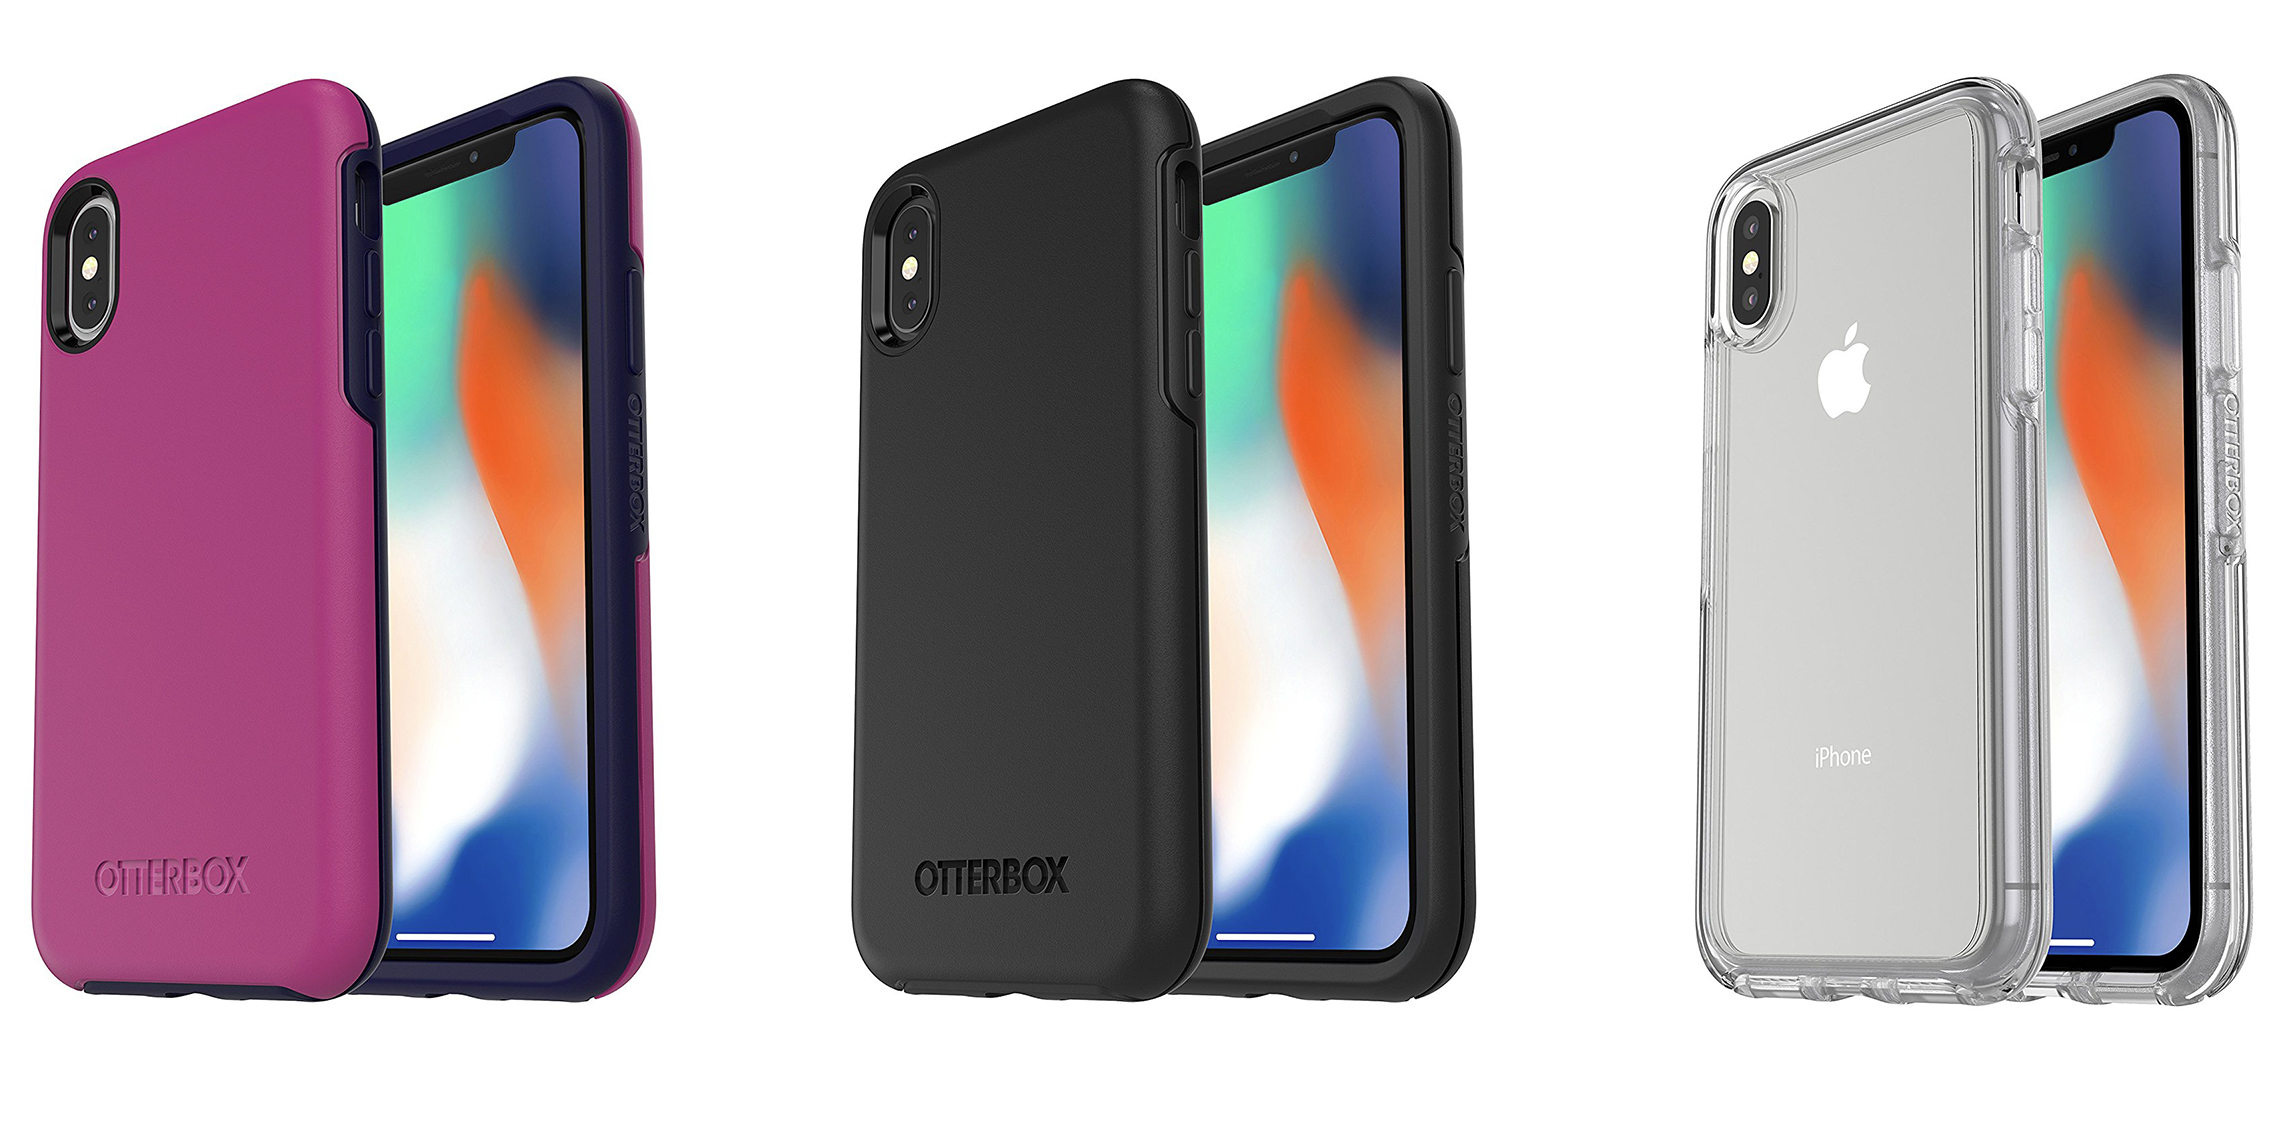 promo code 98108 7cab9 OtterBox Symmetry iPhone X cases from $22 Prime shipped at Amazon ...